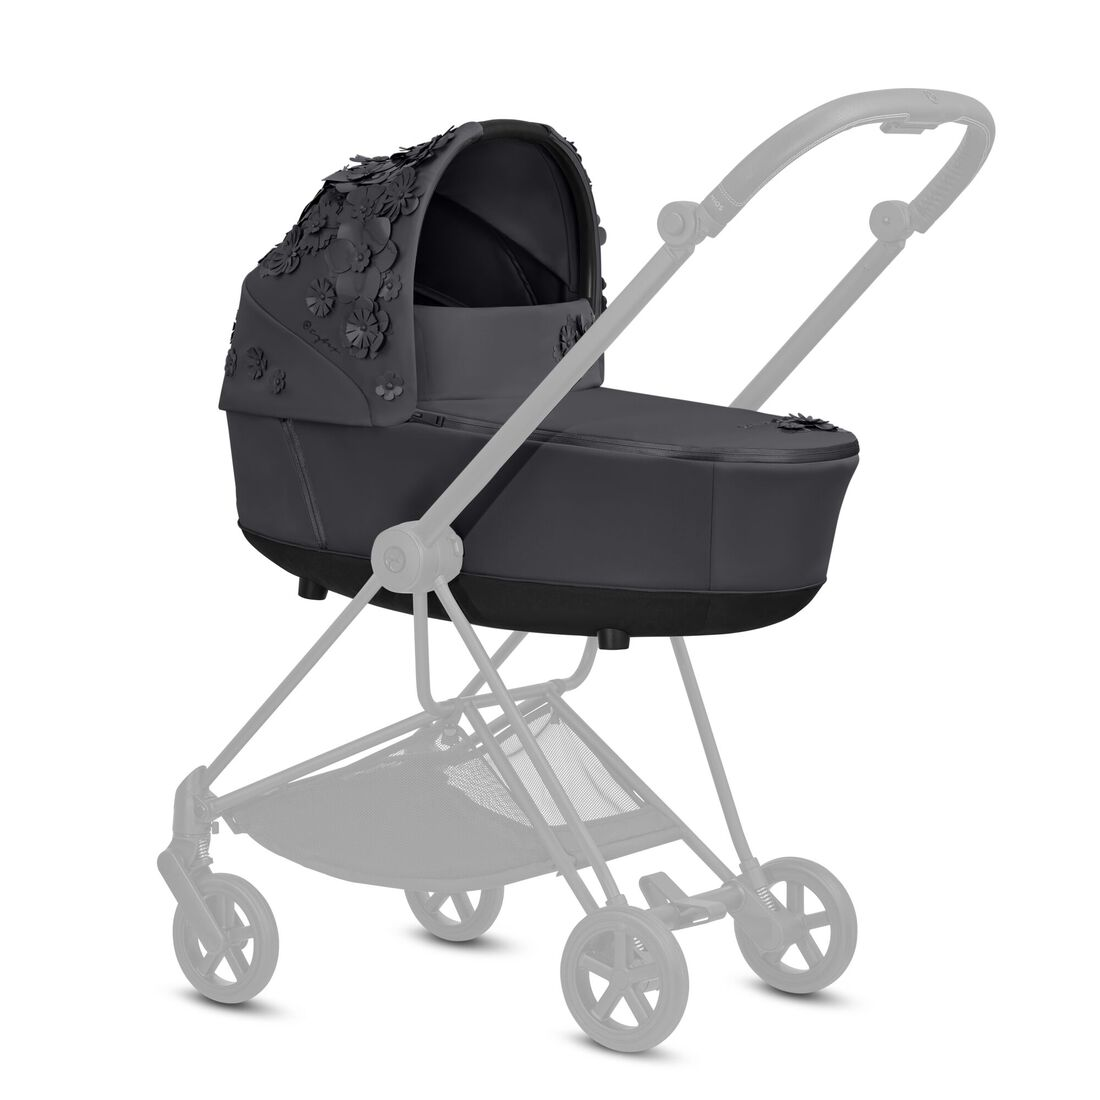 CYBEX Mios Lux Carry Cot - Dream Grey in Dream Grey large image number 4